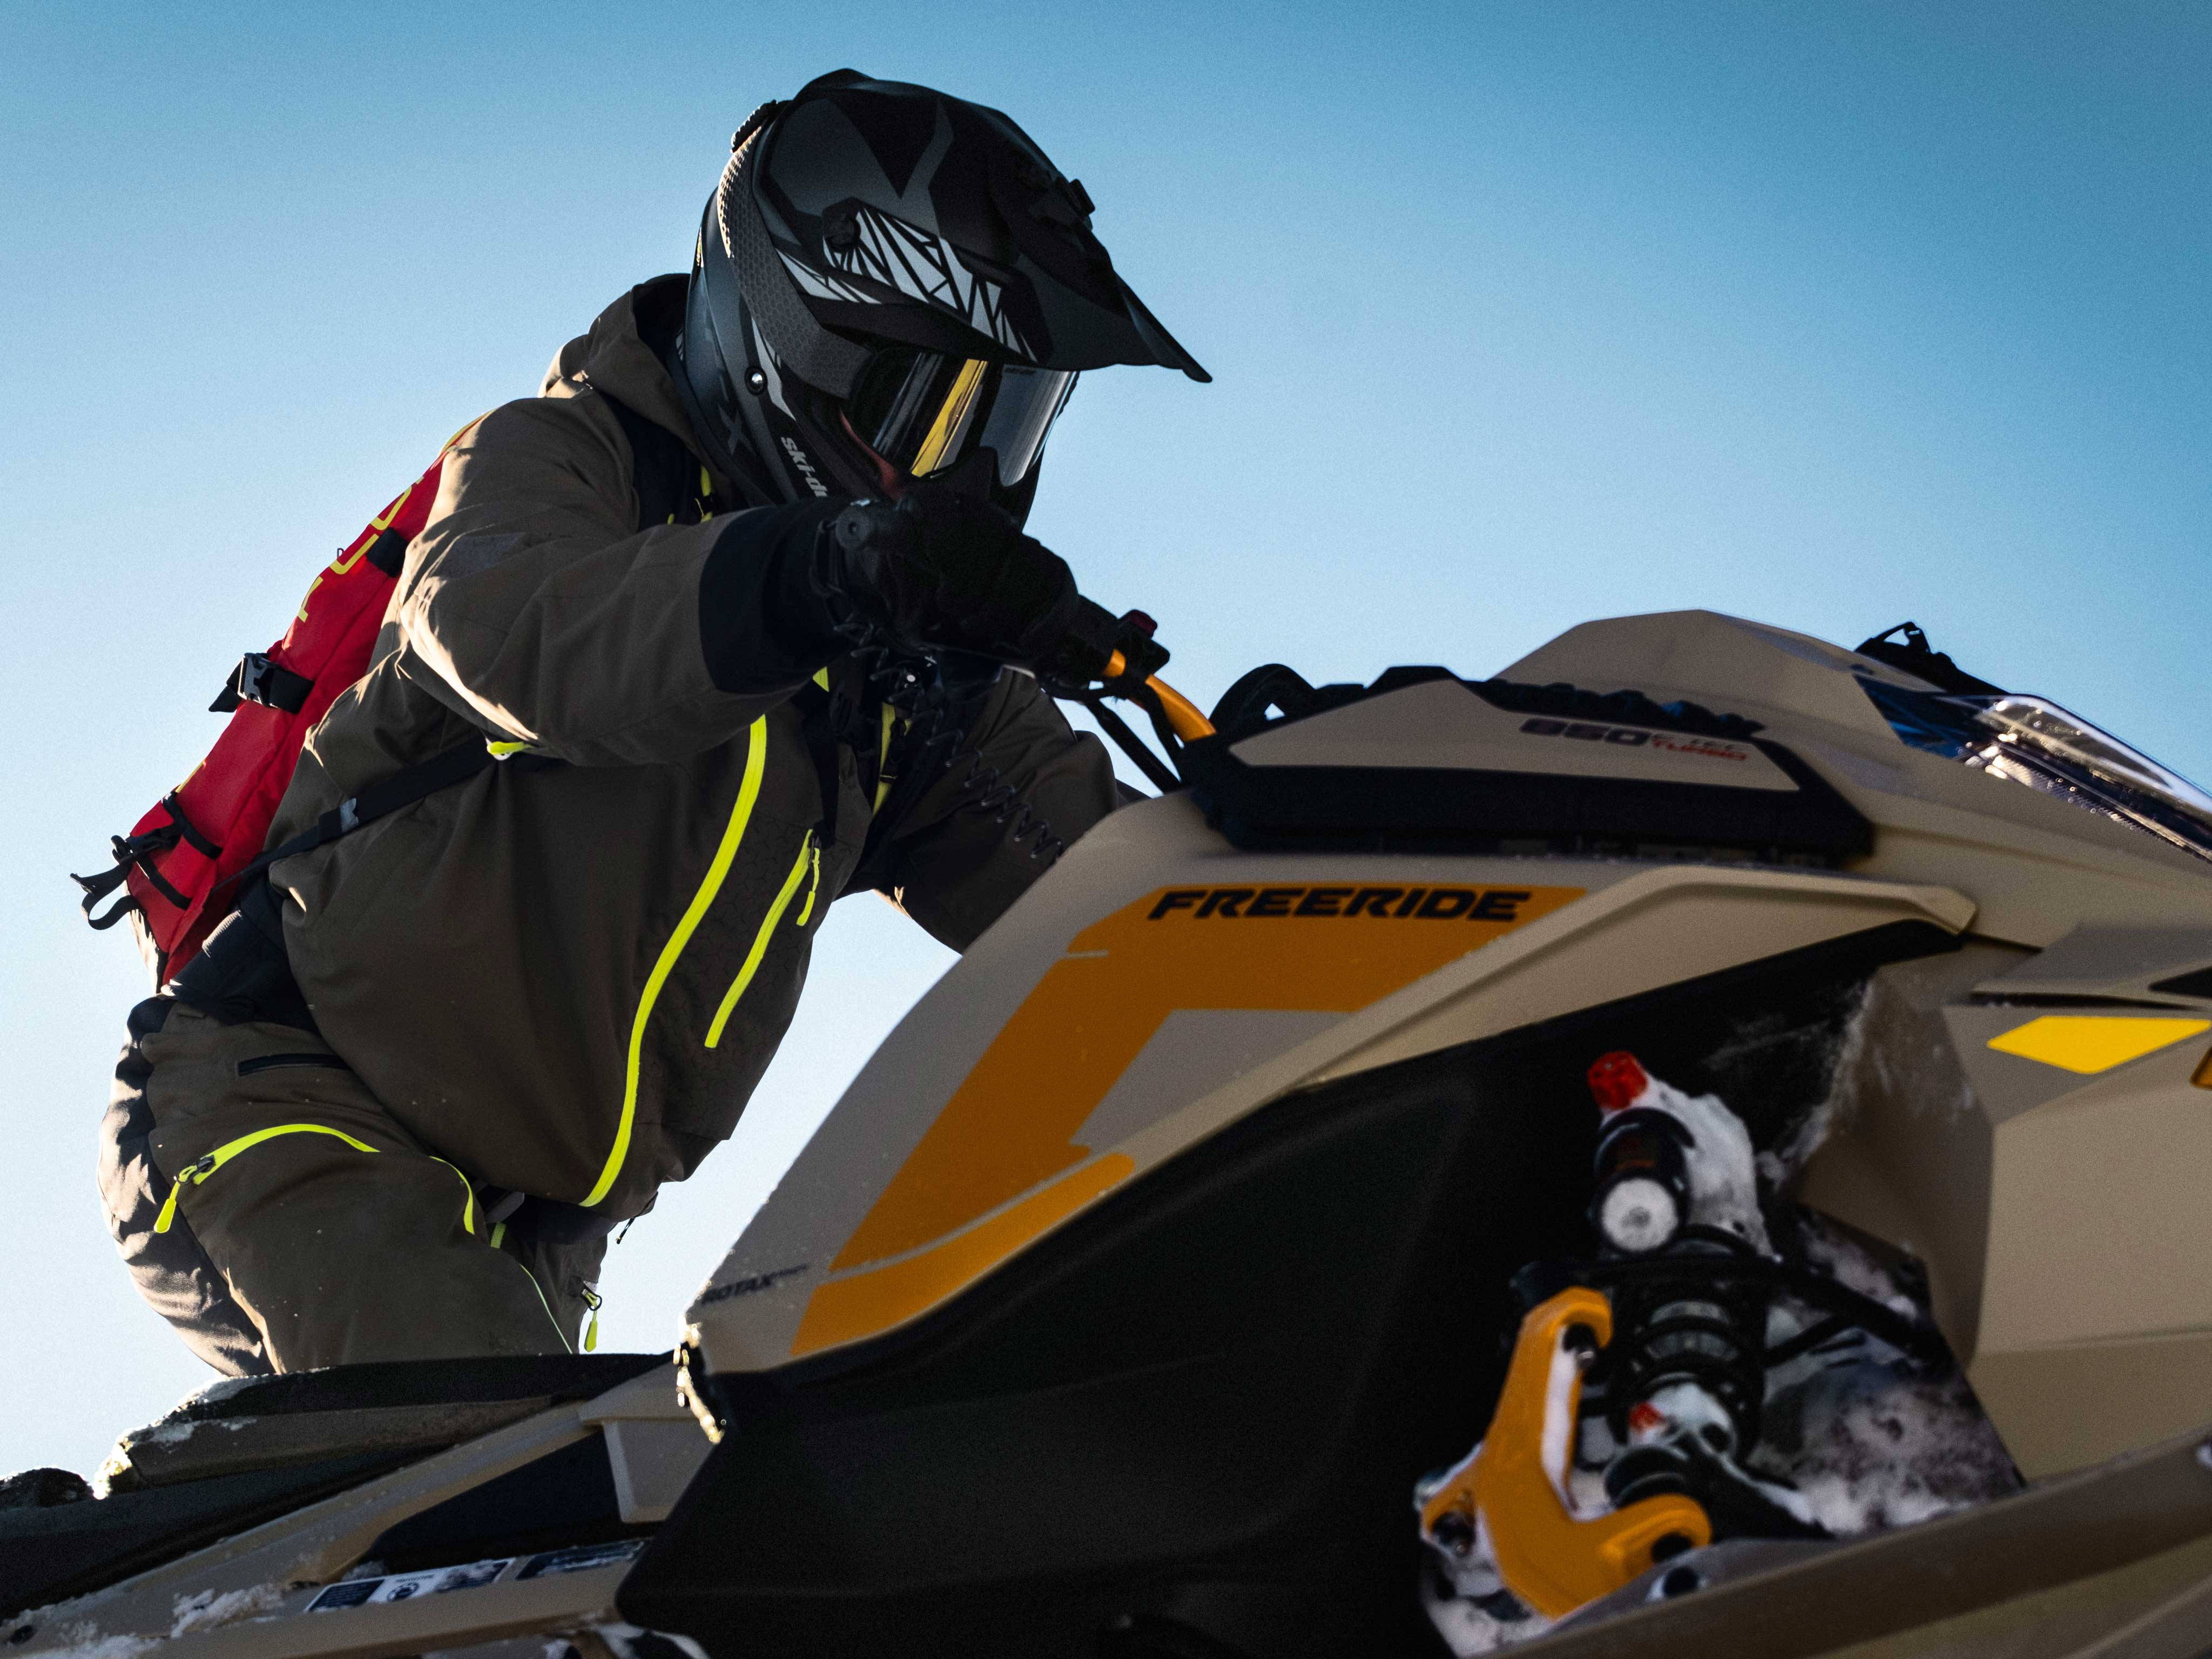 Rider and his 2022 Ski-Doo Freeride